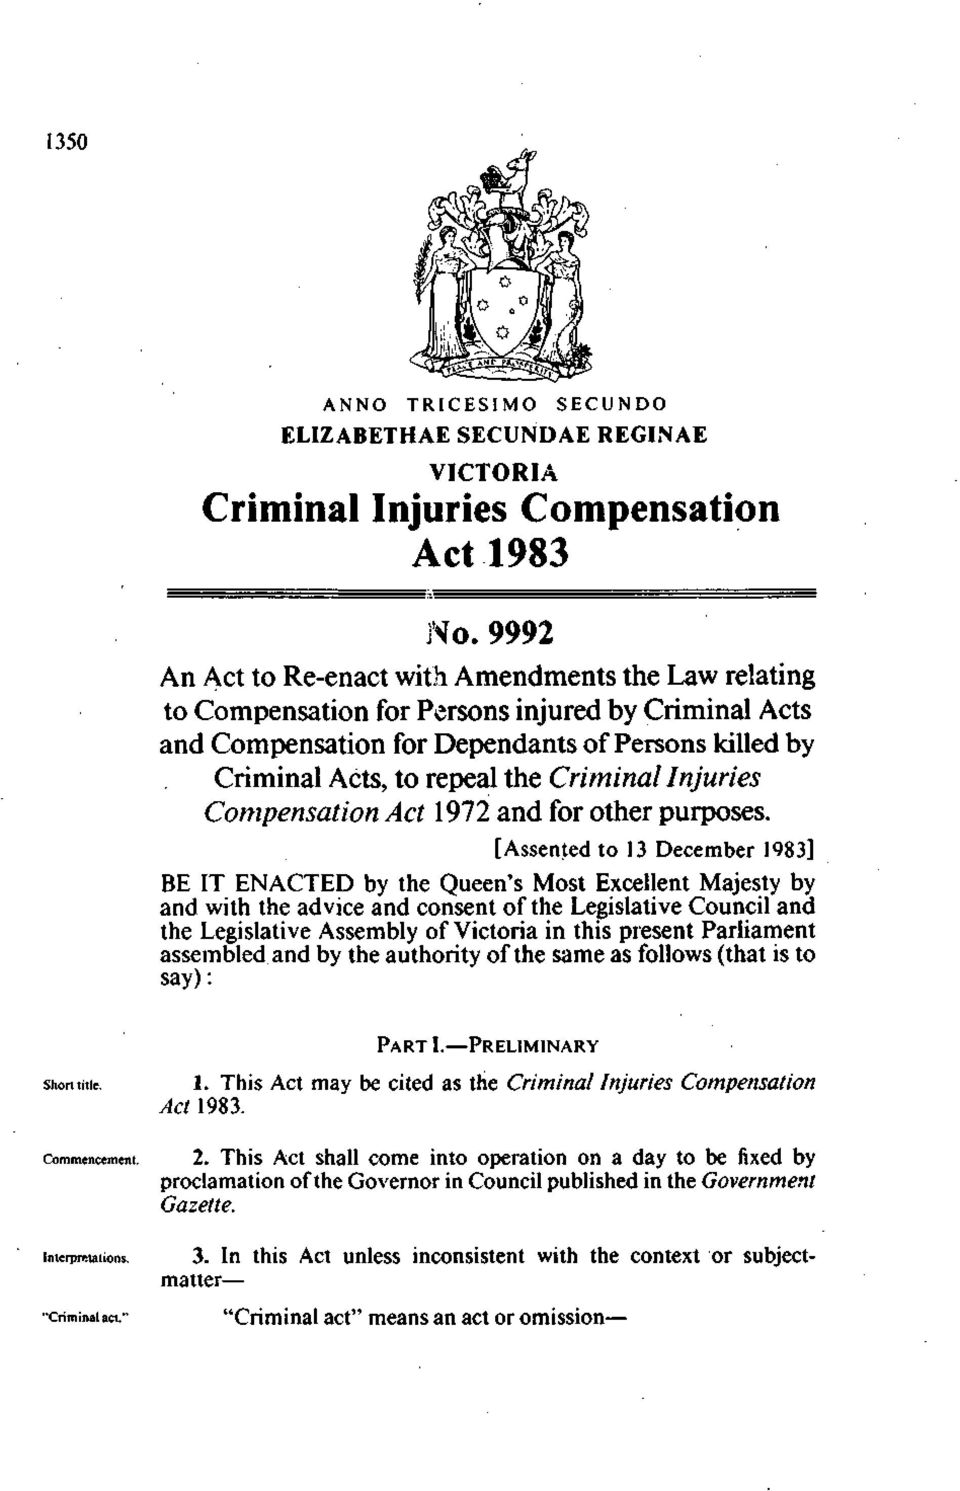 Criminal Injuries Compensation Act 1972 and for other purposes.